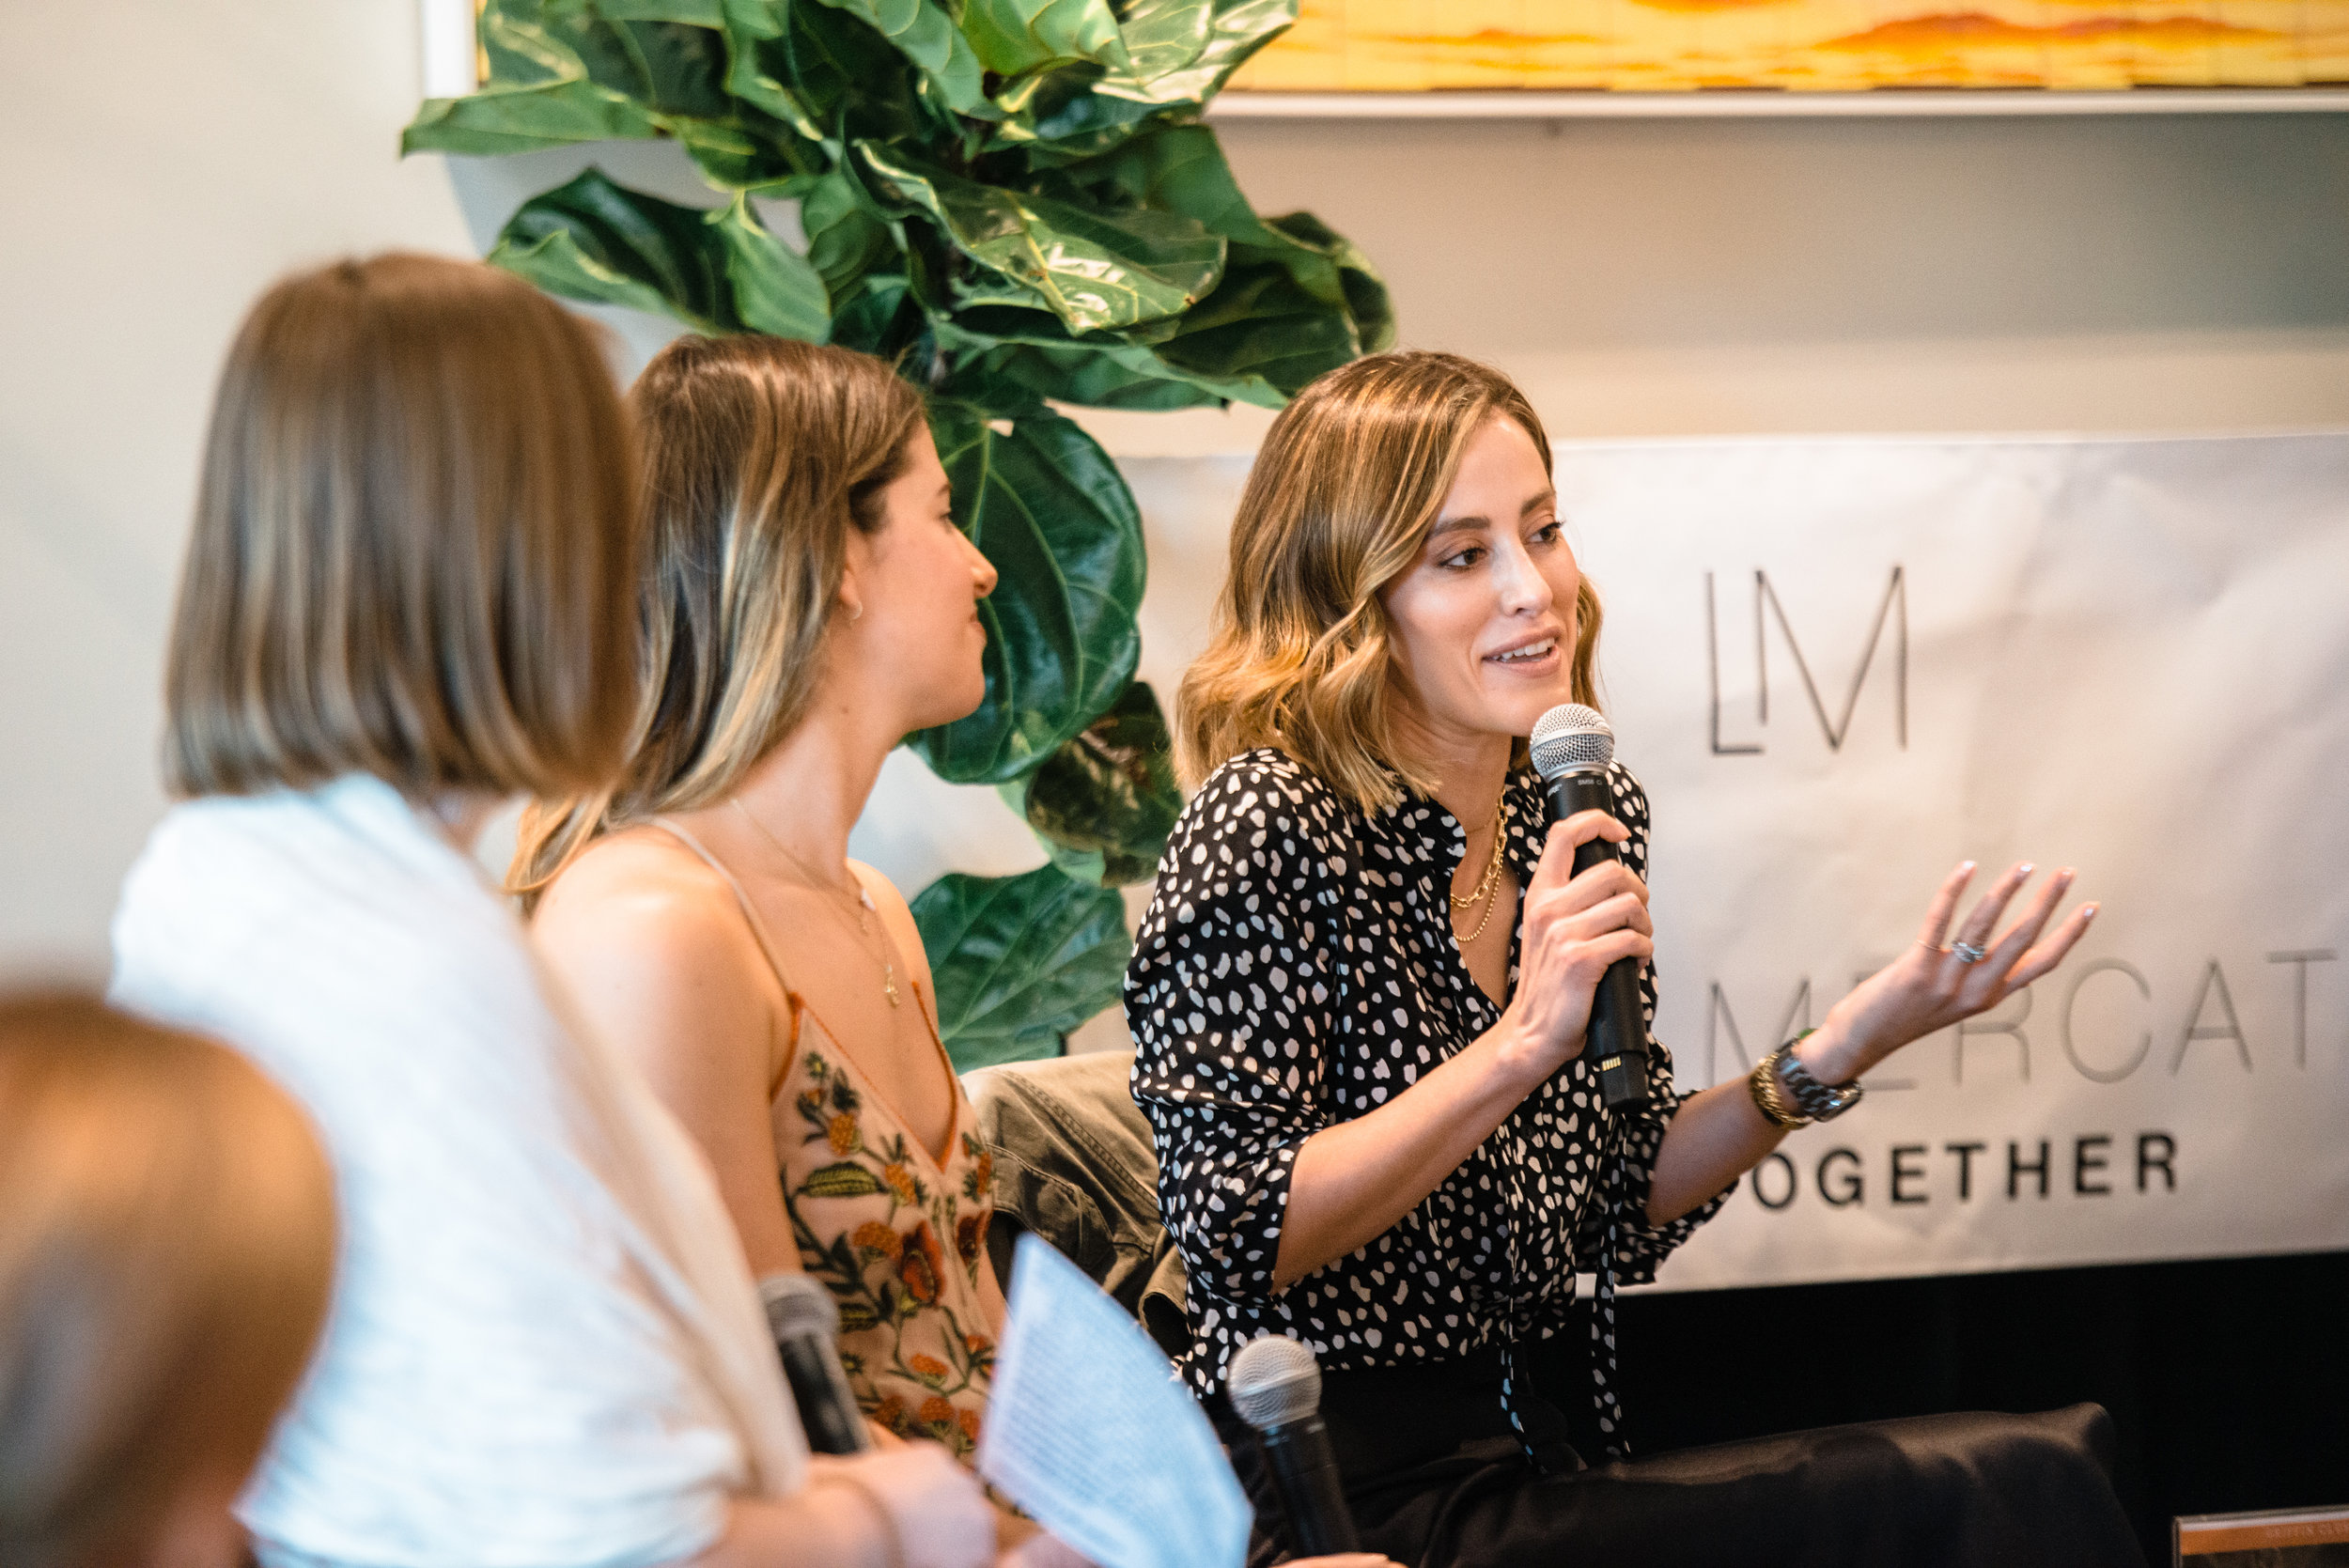 Dr. Sarah Oreck was a guest speaker at a Wellness Weekend organized by Local Mercato at the Griffin Club discussing hormone health.